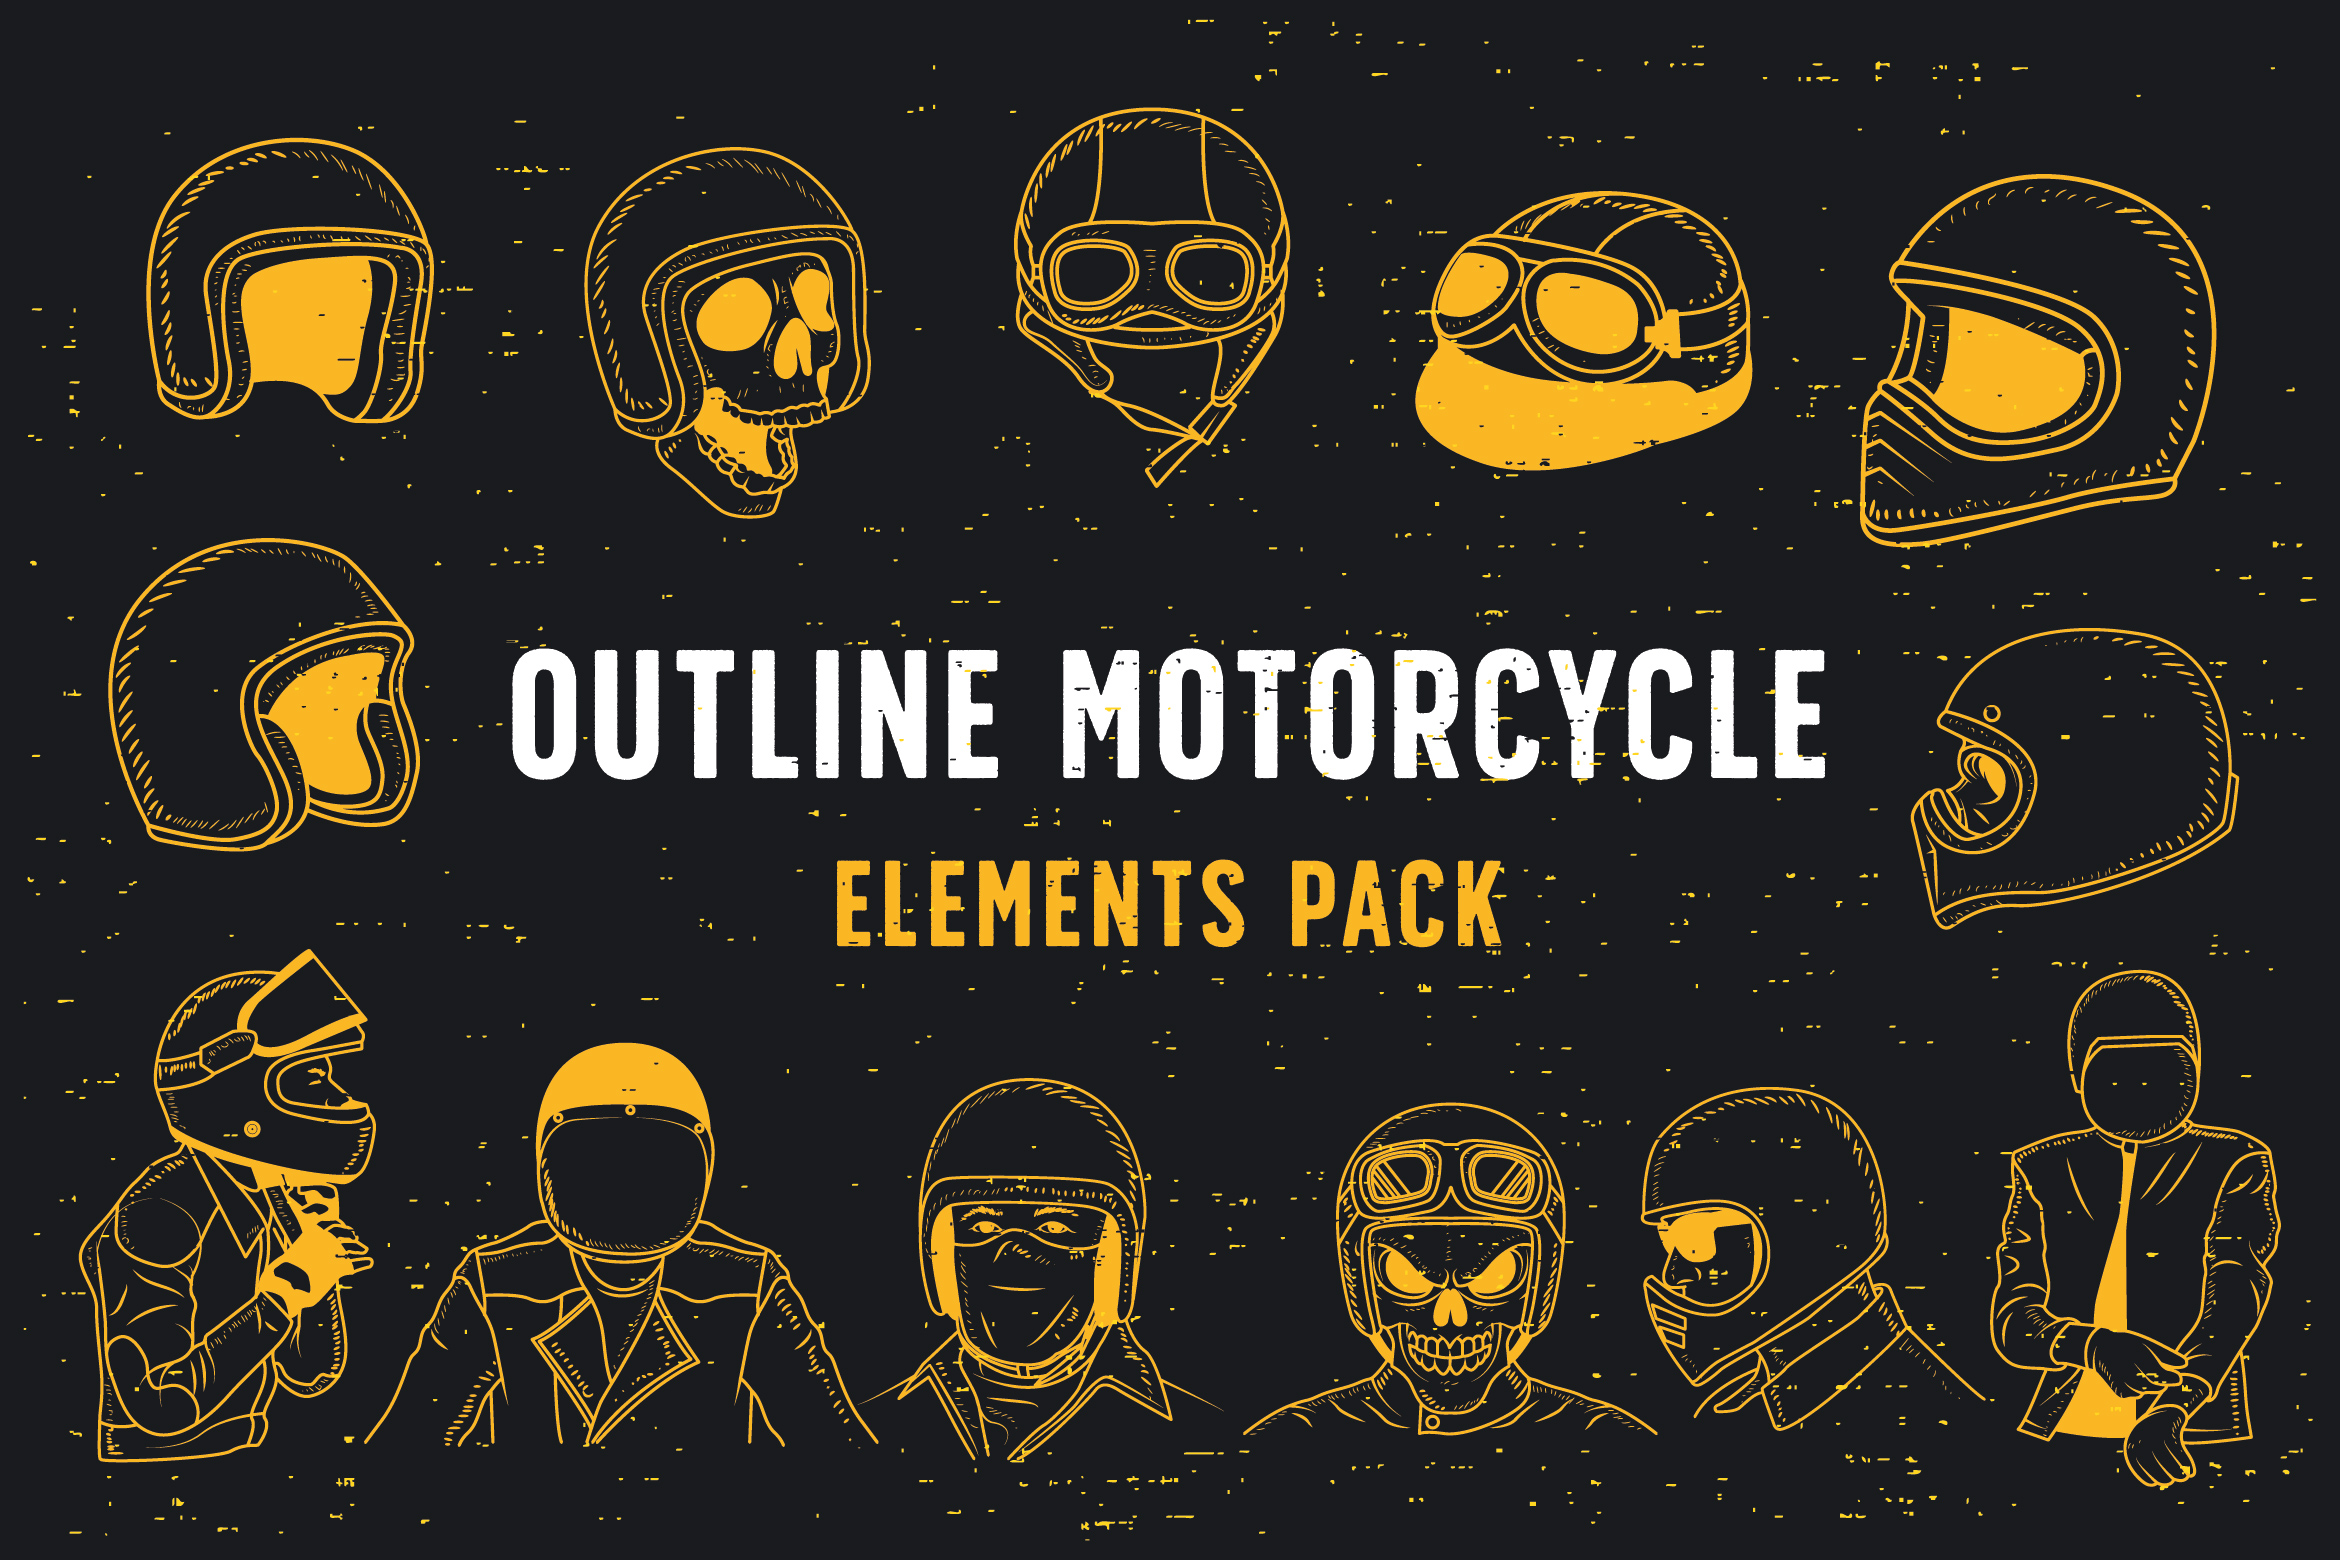 Outline Motorcycle Elements Pack Graphic Illustrations By storictype - Image 1